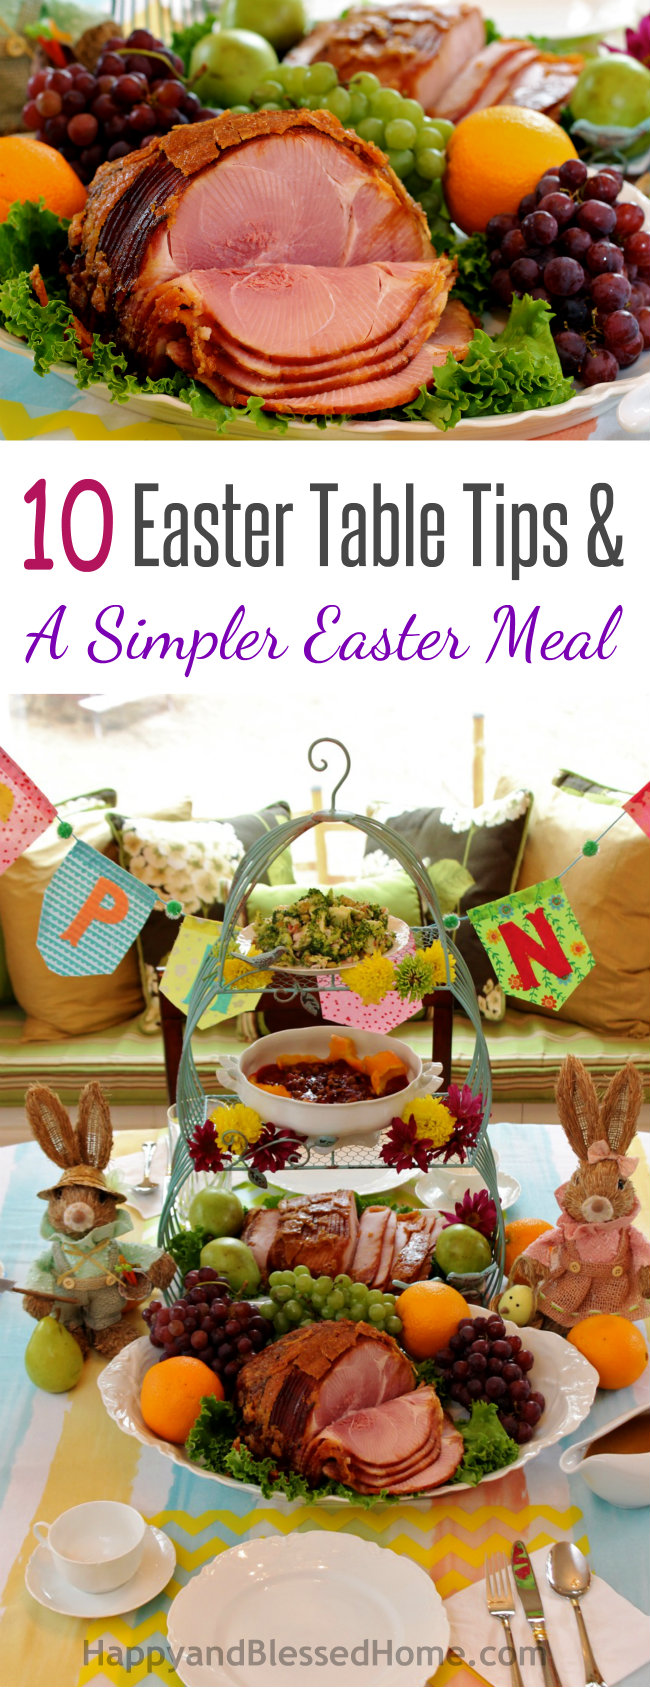 10 Easter Table Tips and A Simpler Easter Meal from HappyandBlessedHome.com